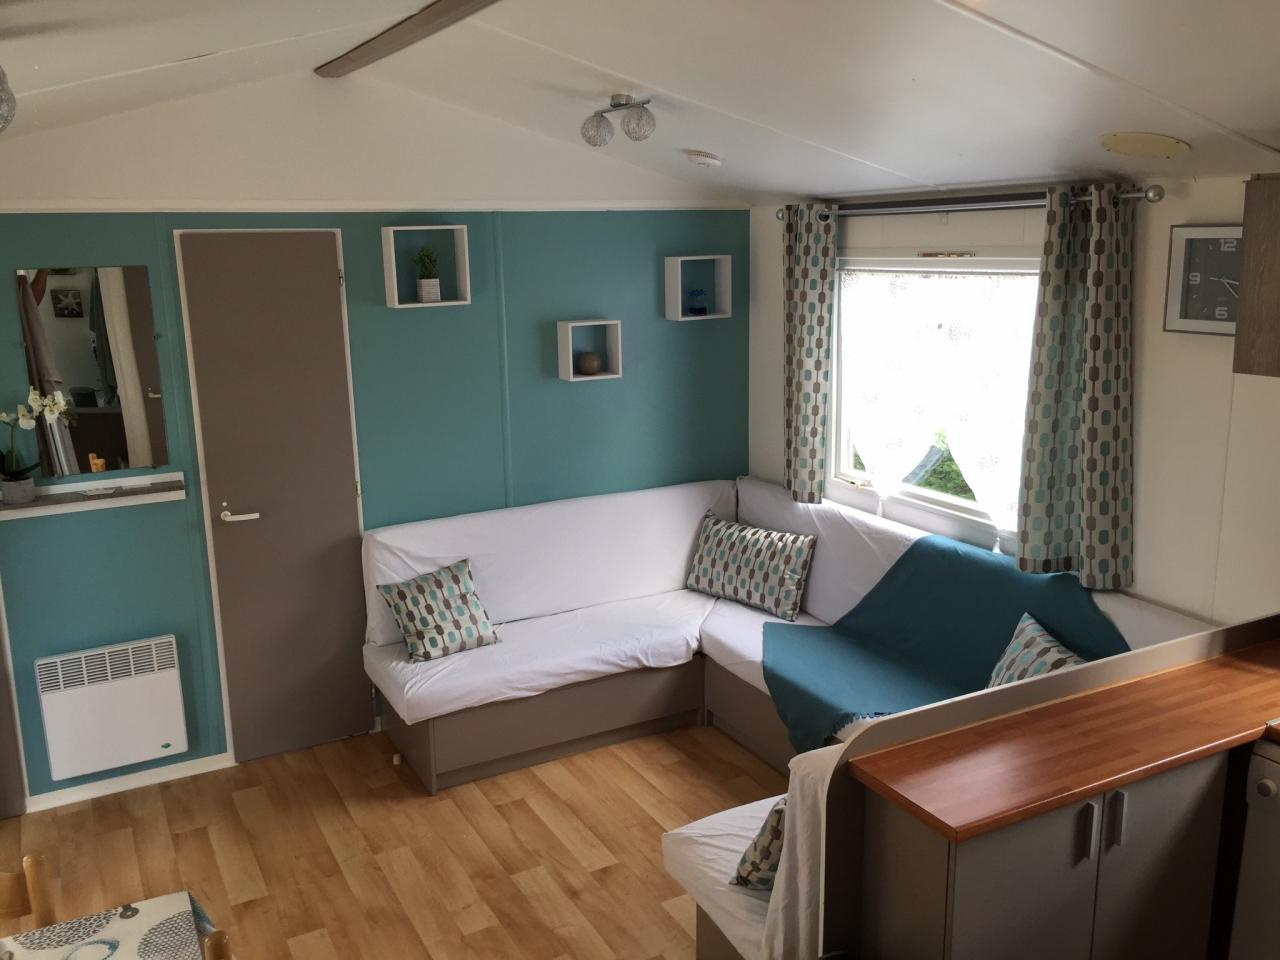 Housse banquette mobilhome